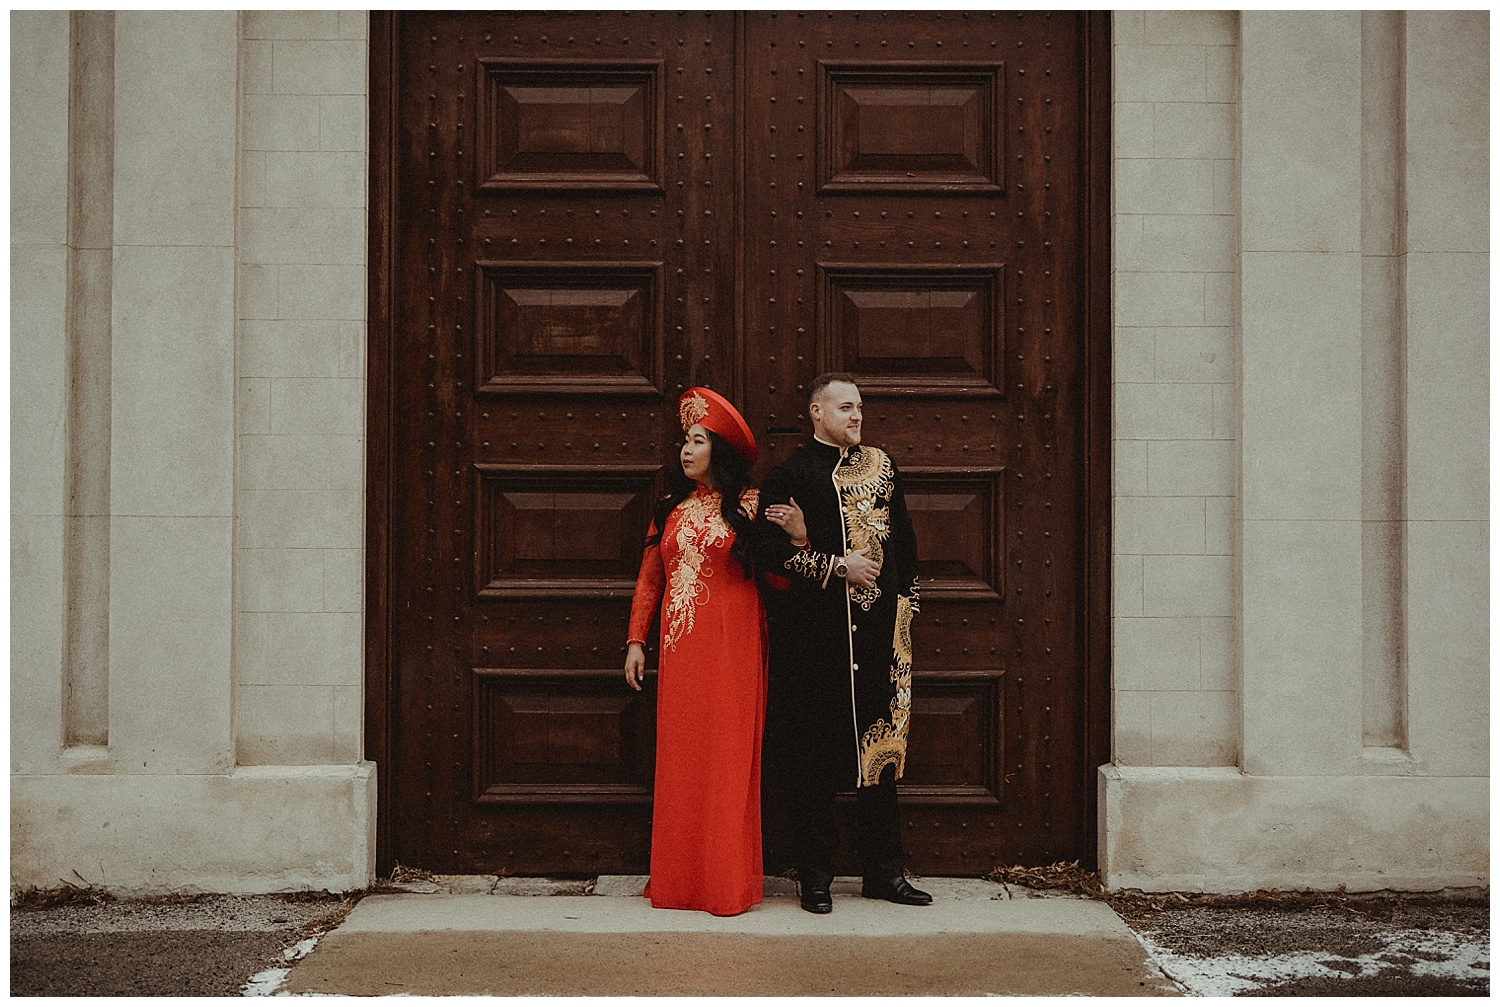 Katie Marie Photography | Hamilton Ontario Wedding Photographer | Hamilton Engagement Session | HamOnt | Vietnamese Engagement Session | Traditional Outfit Engagement Session | Dundurn Castle_0005.jpg